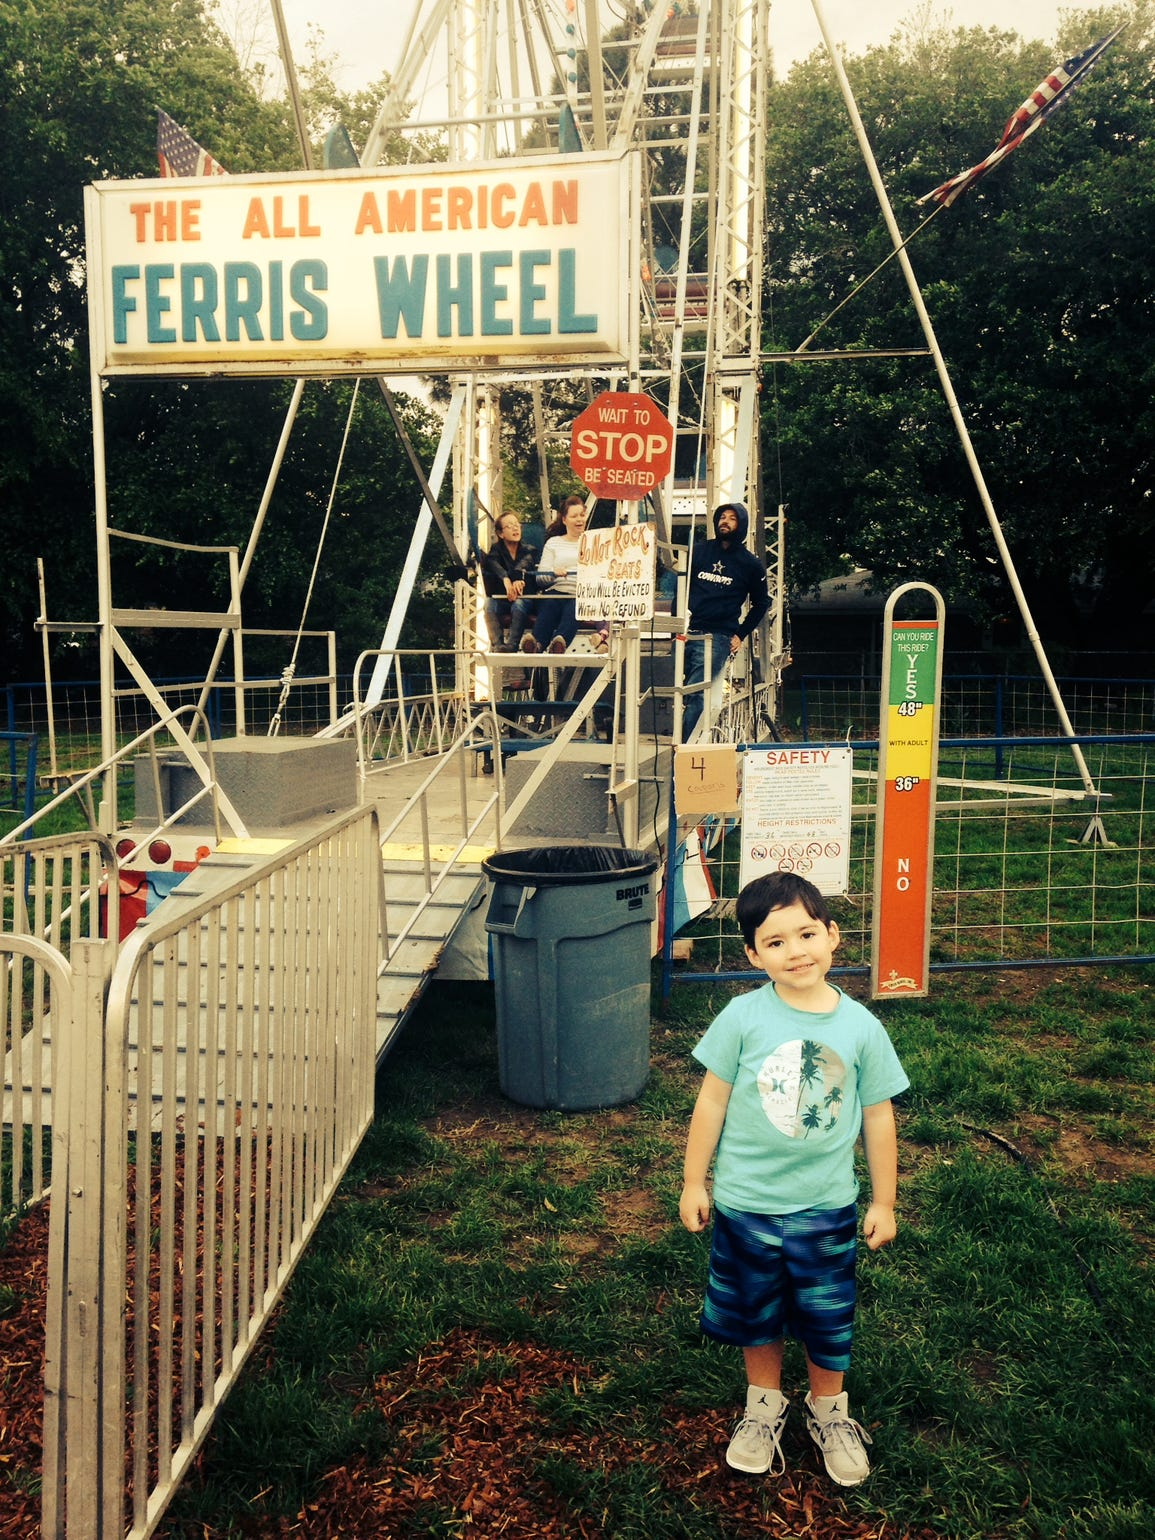 My son, Dylan, took his first ride on the Ferris Wheel